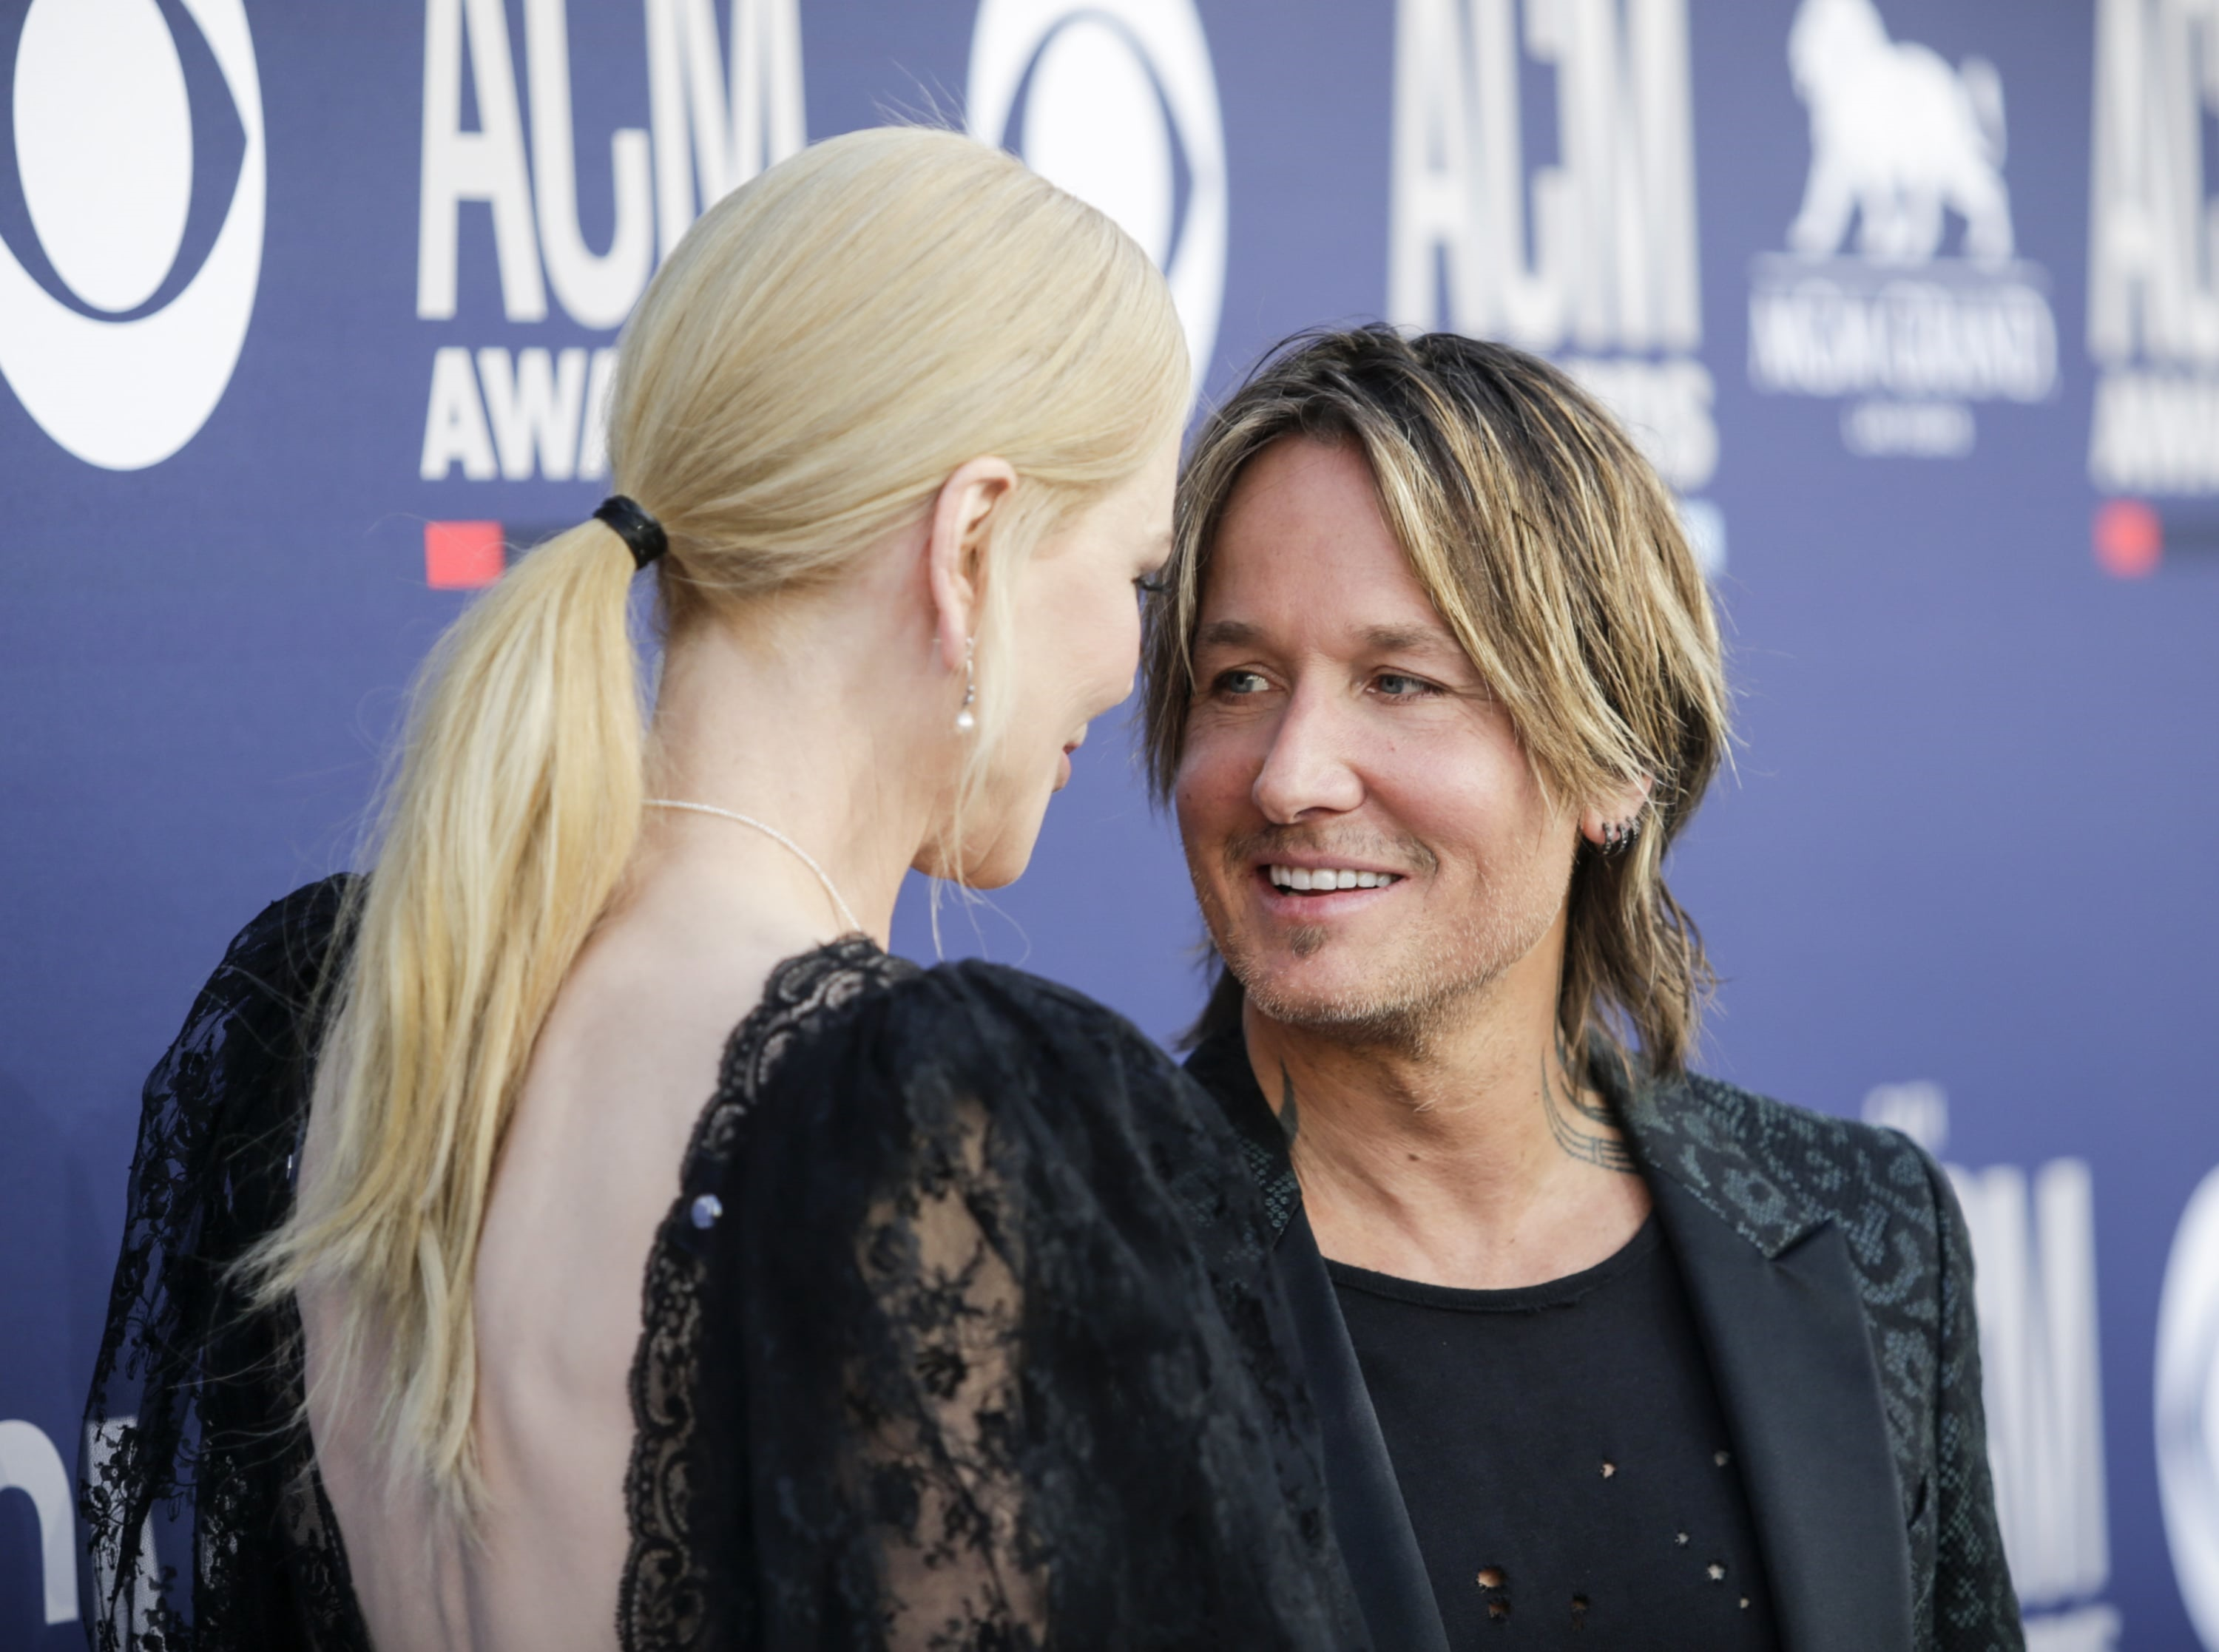 Nicole Kidman and Keith Urban attends the 54TH ACADEMY OF COUNTRY MUSIC AWARDS, to broadcast LIVE from MGM Grand Garden Arena in Las Vegas Sunday, April 7, 2019 (8:00-11:00 PM, ET/delayed PT) on the CBS Television Network. Photo: Francis Specker/CBS ©2019 CBS Broadcasting, Inc. All Rights Reserved.